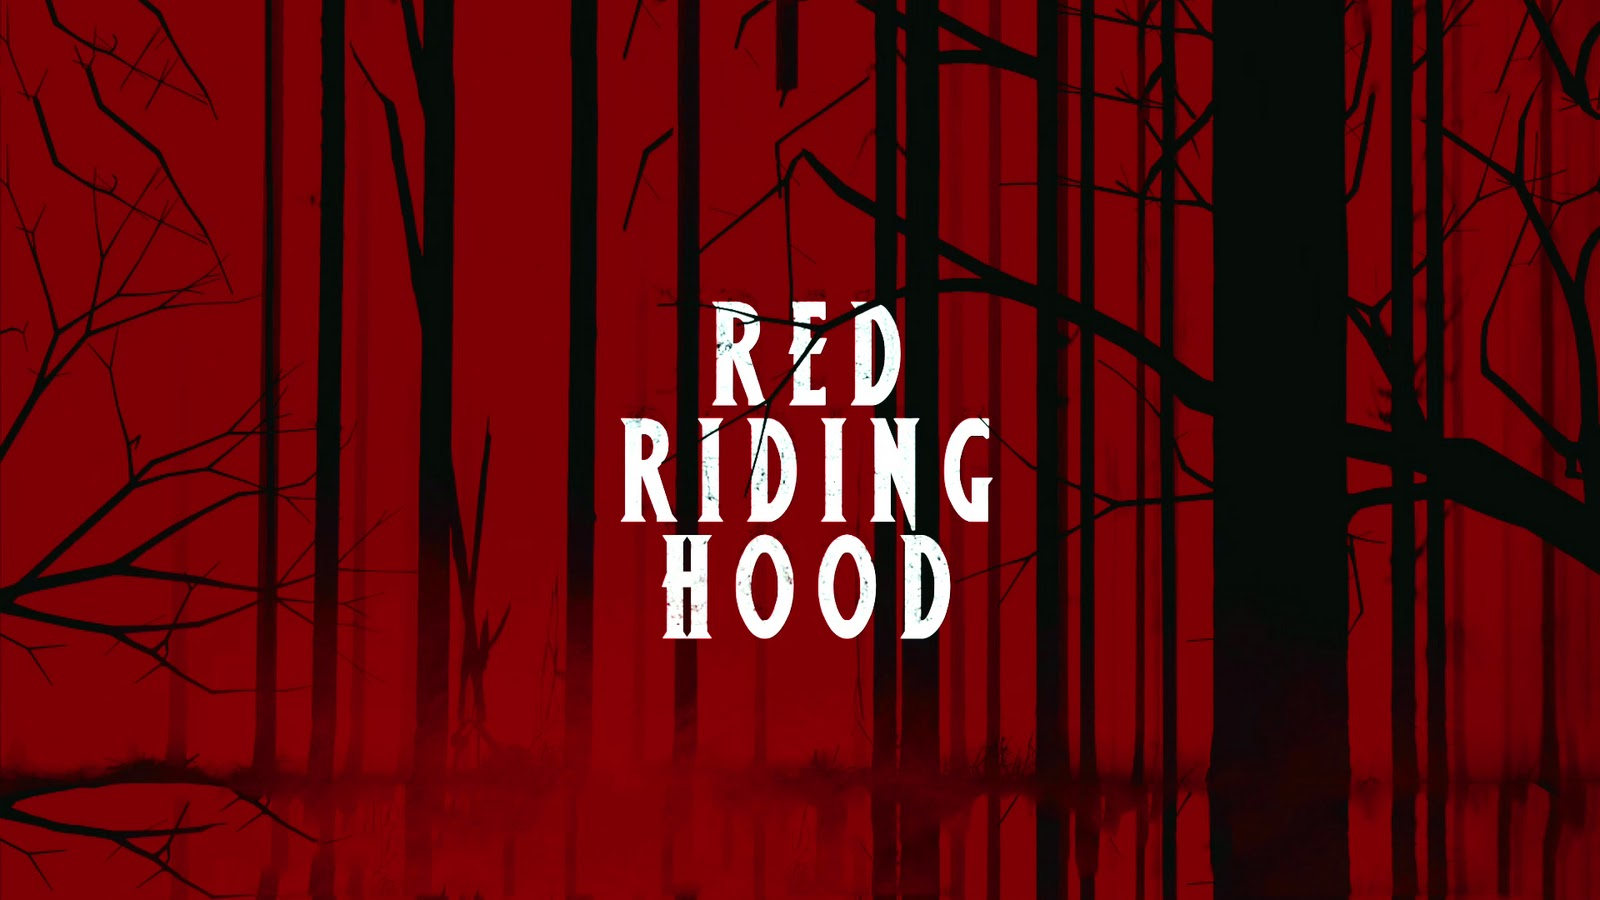 hollywood movie pictures photos images trailers  hd movie red riding hood hd movie red riding hood images hd movie red riding hood pictures hd movie red riding hood photoes